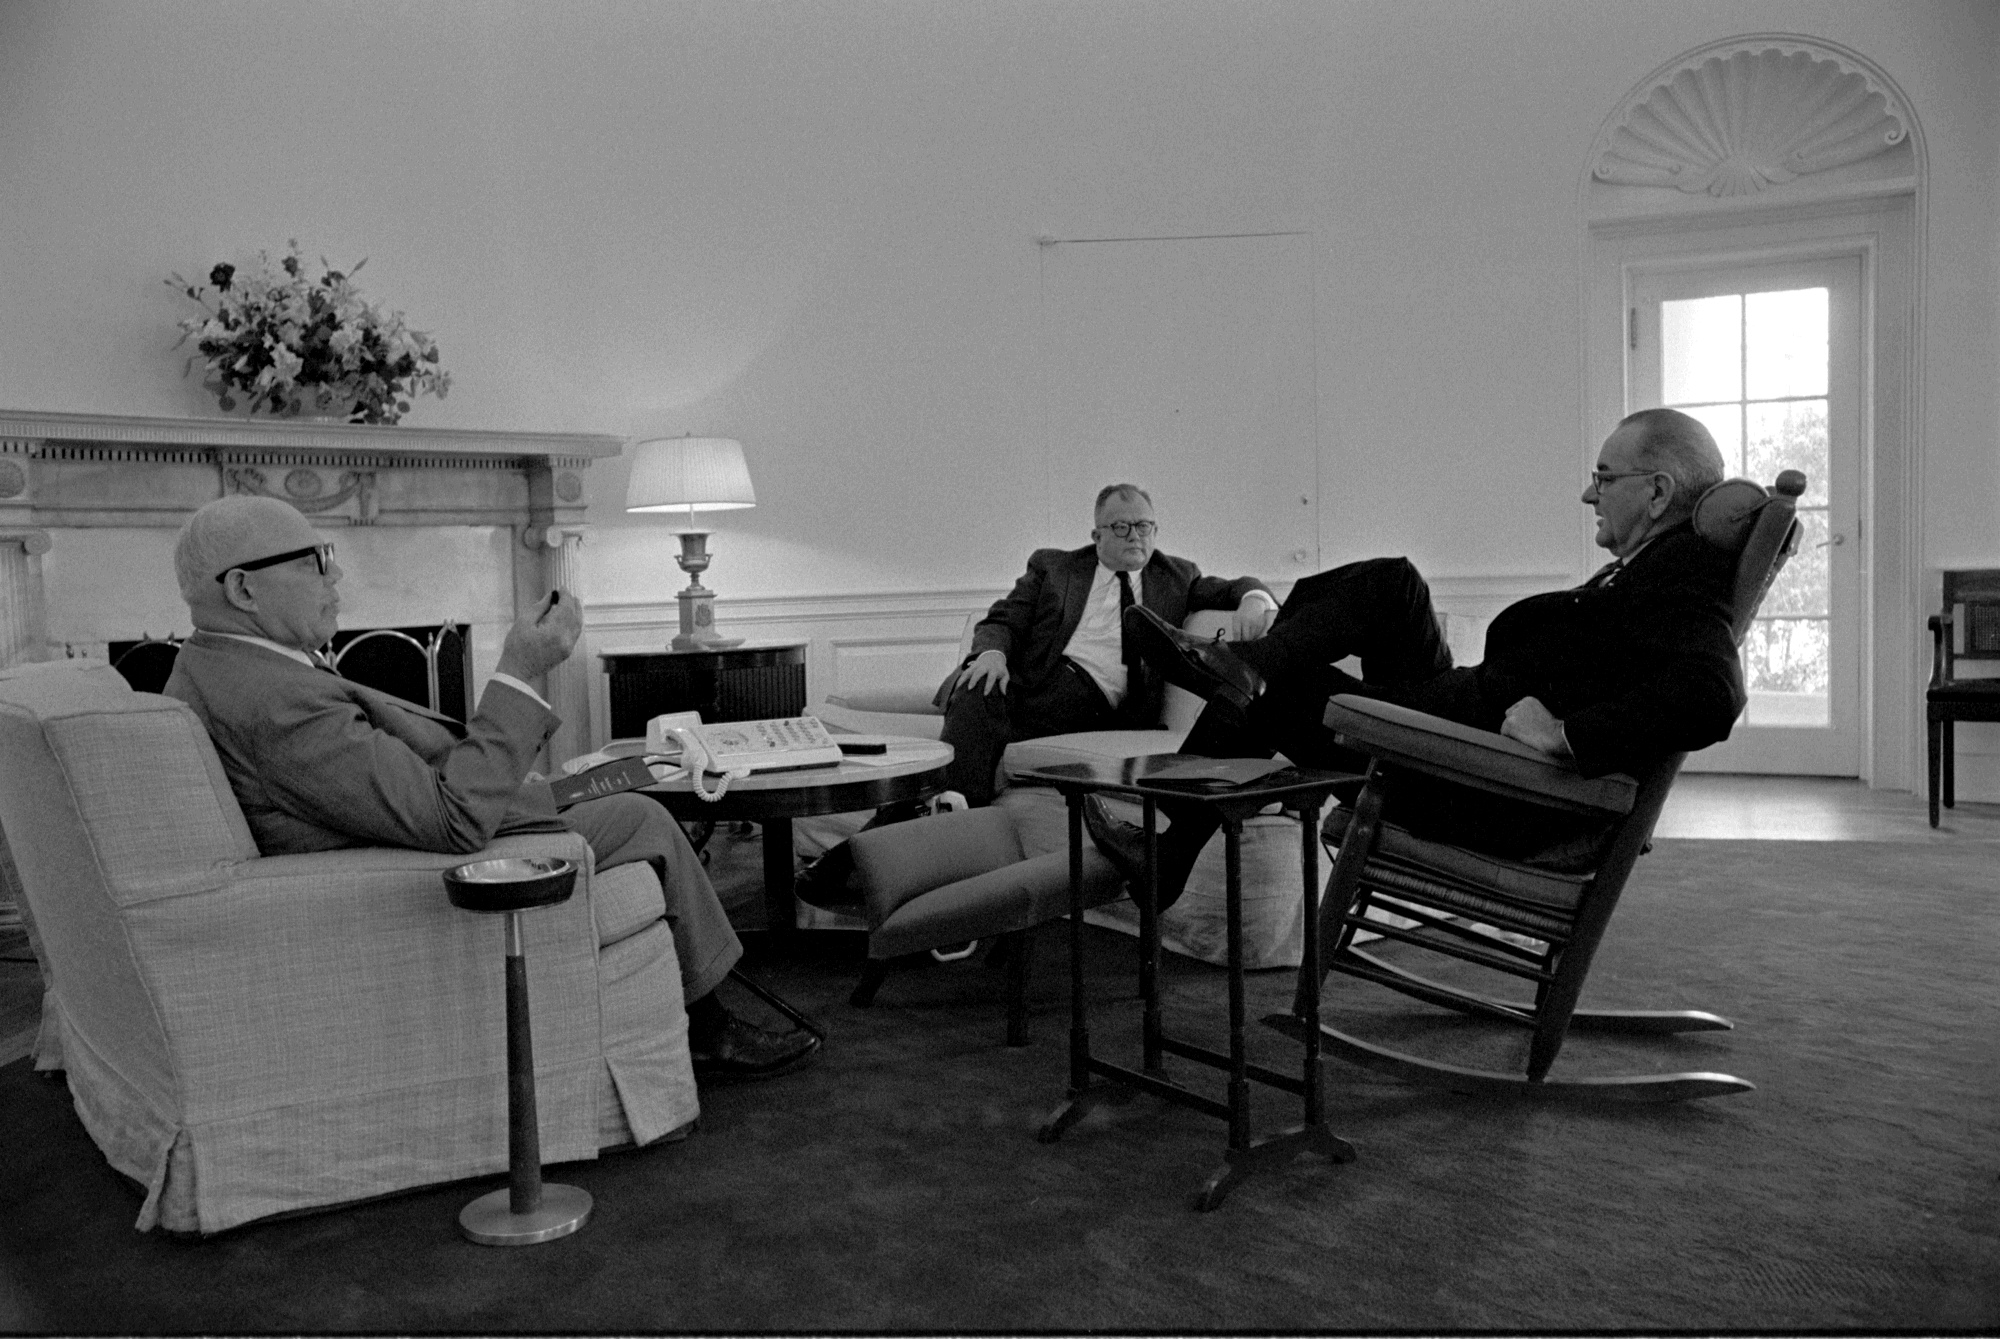 lbj oval office. File:Meeting Oval Office LBJ.jpg Lbj W